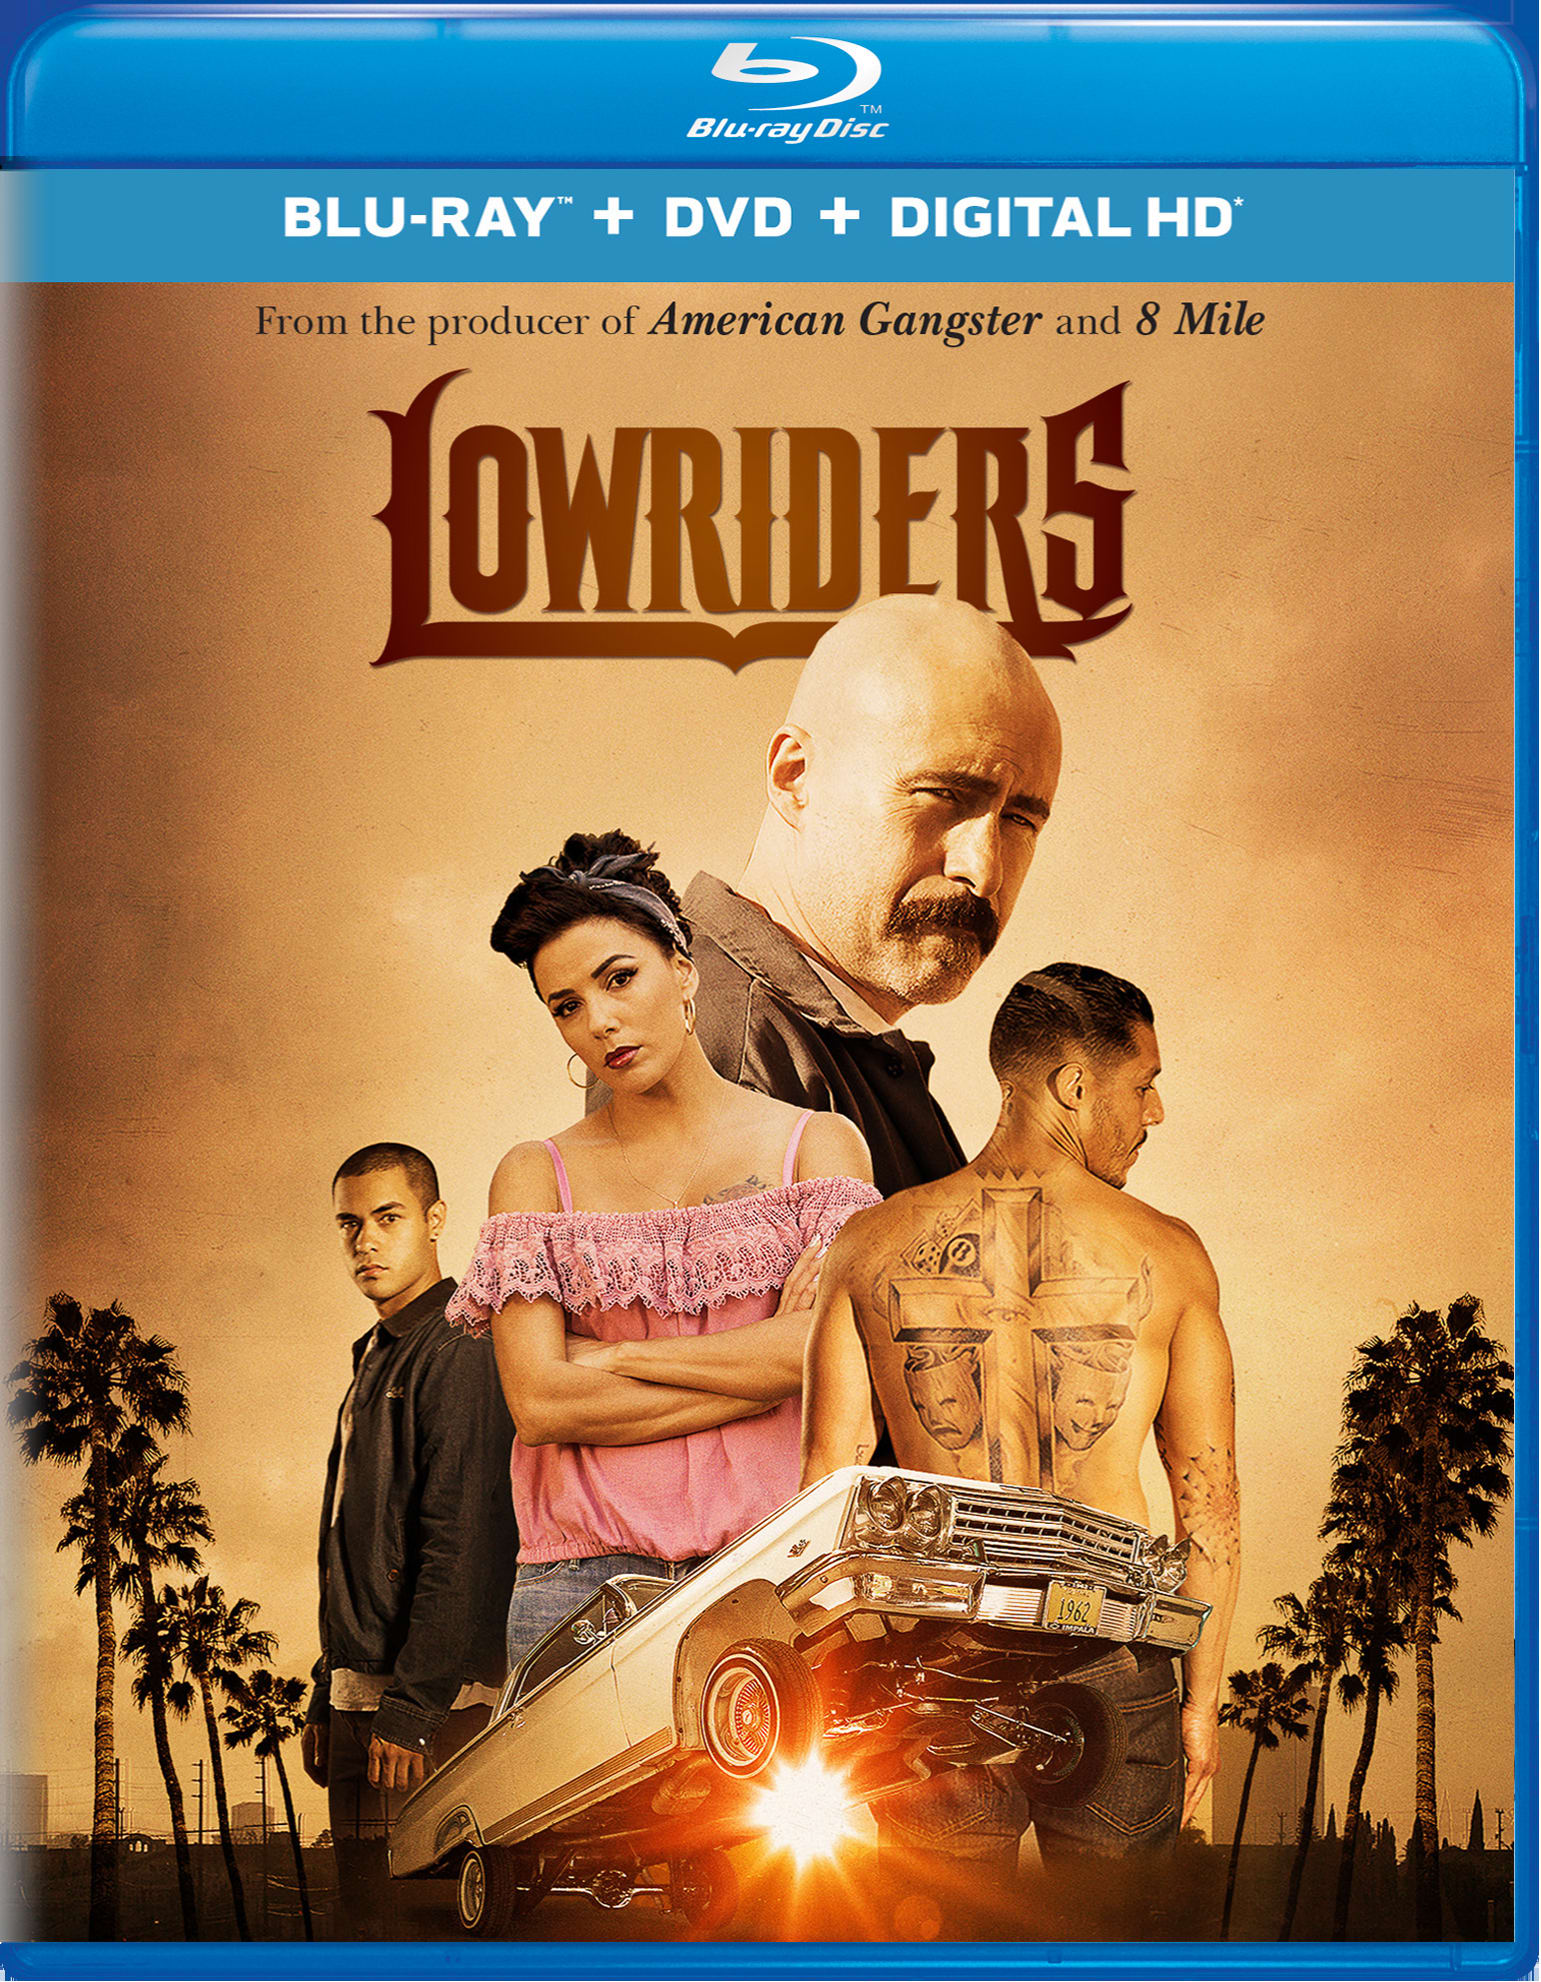 Lowriders (DVD + Digital) [Blu-ray]